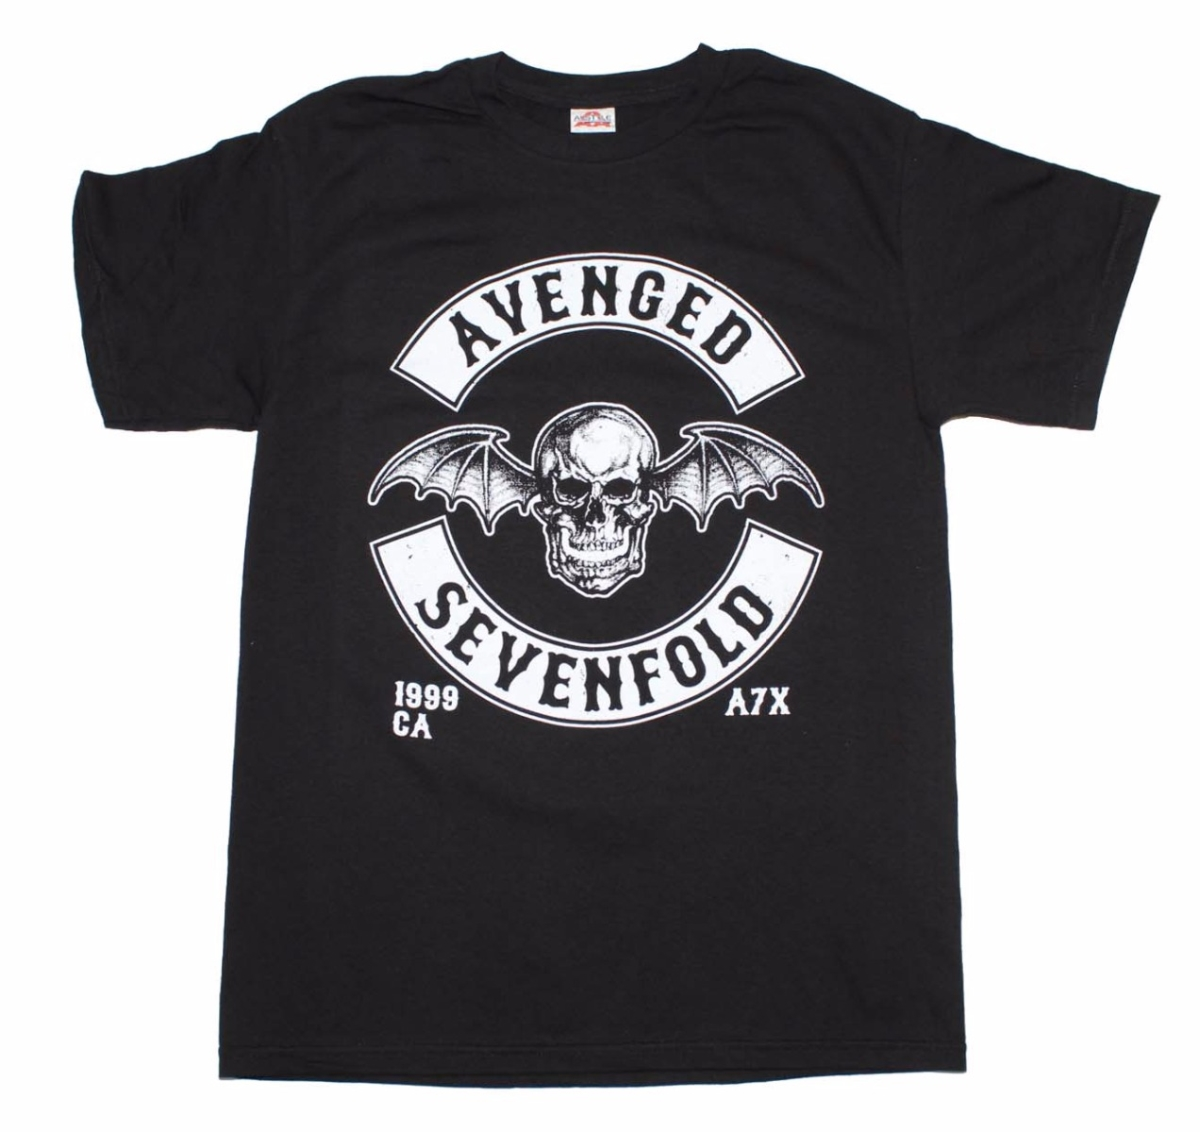 Live Nation Merchandise LNM-7A153-S Avenged Sevenfold Deathbat Crest Adult Mens T-Shirt, Black - Small